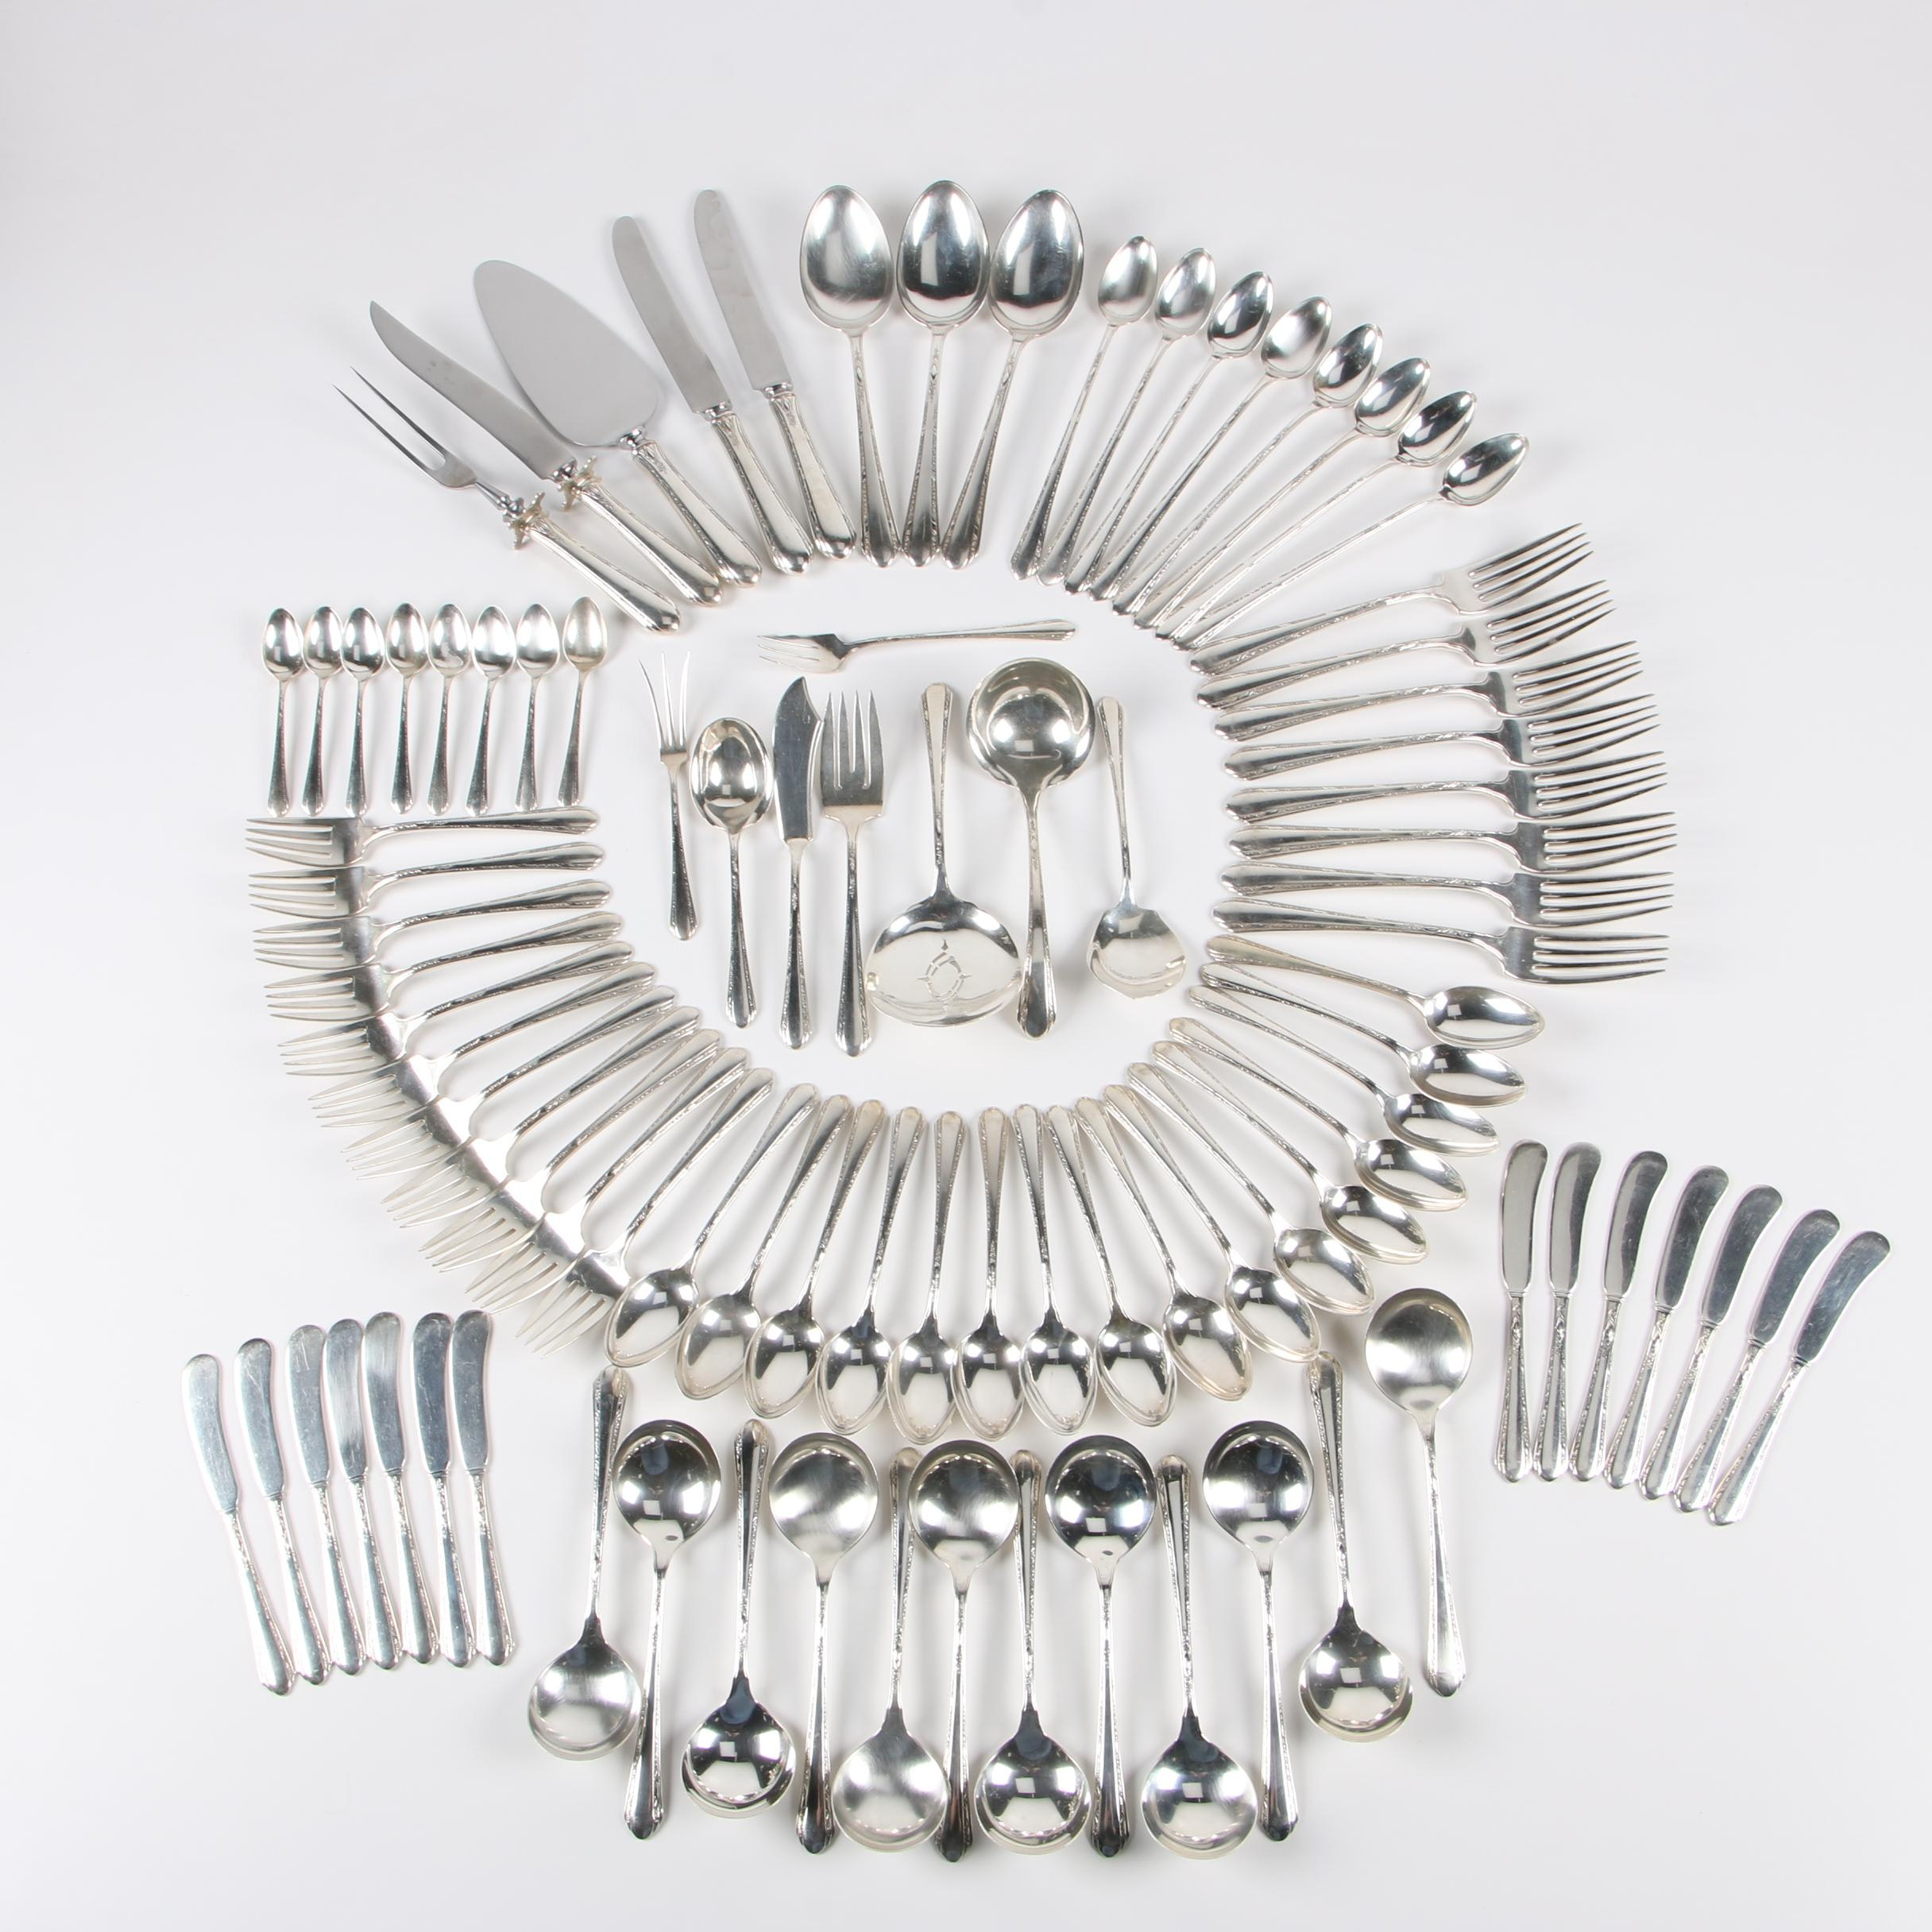 """Towle """"Chased Diana"""" Sterling Silver Flatware, Early/Mid 20th Century"""